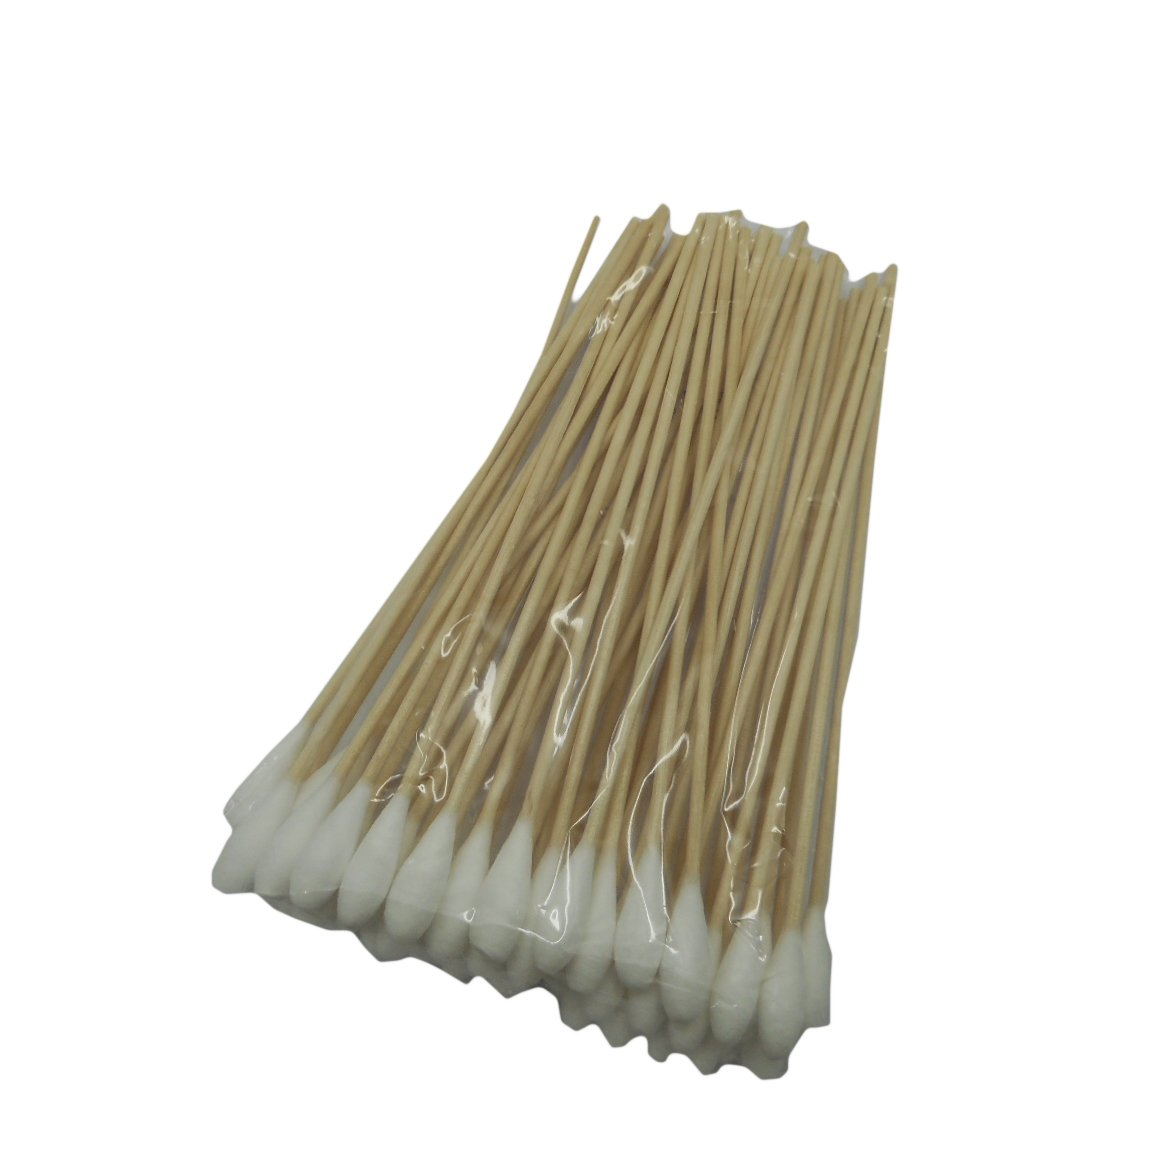 Urairak Cotton Swabs with Wood Handle Great for Dog Ears (6''-Middle) Set of 50 Pcs.